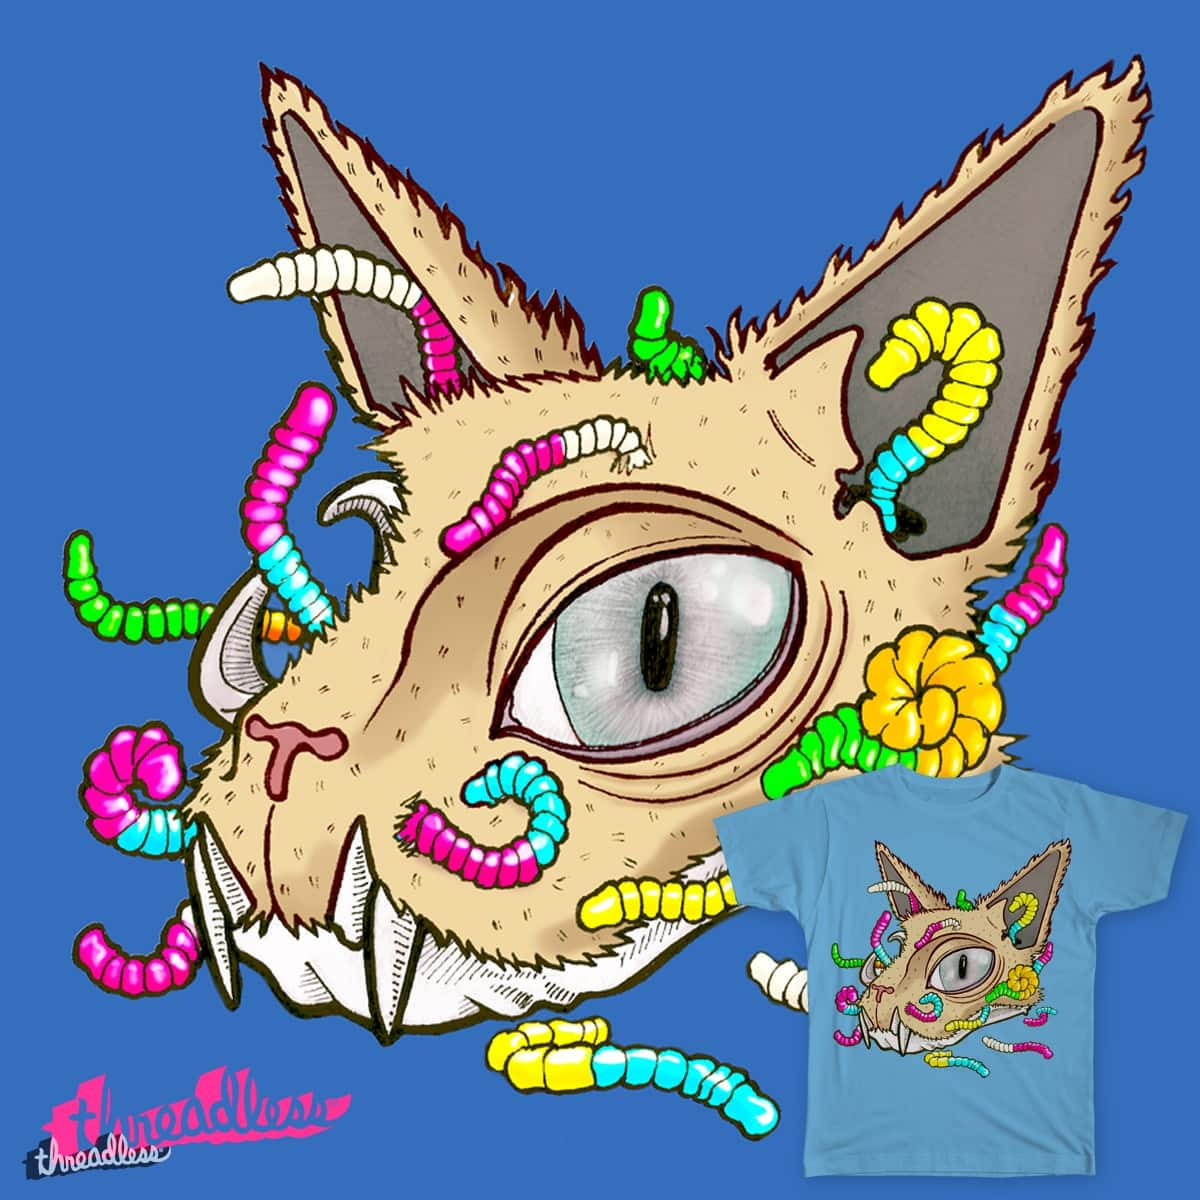 Decomposing Cat by Mrlima on Threadless